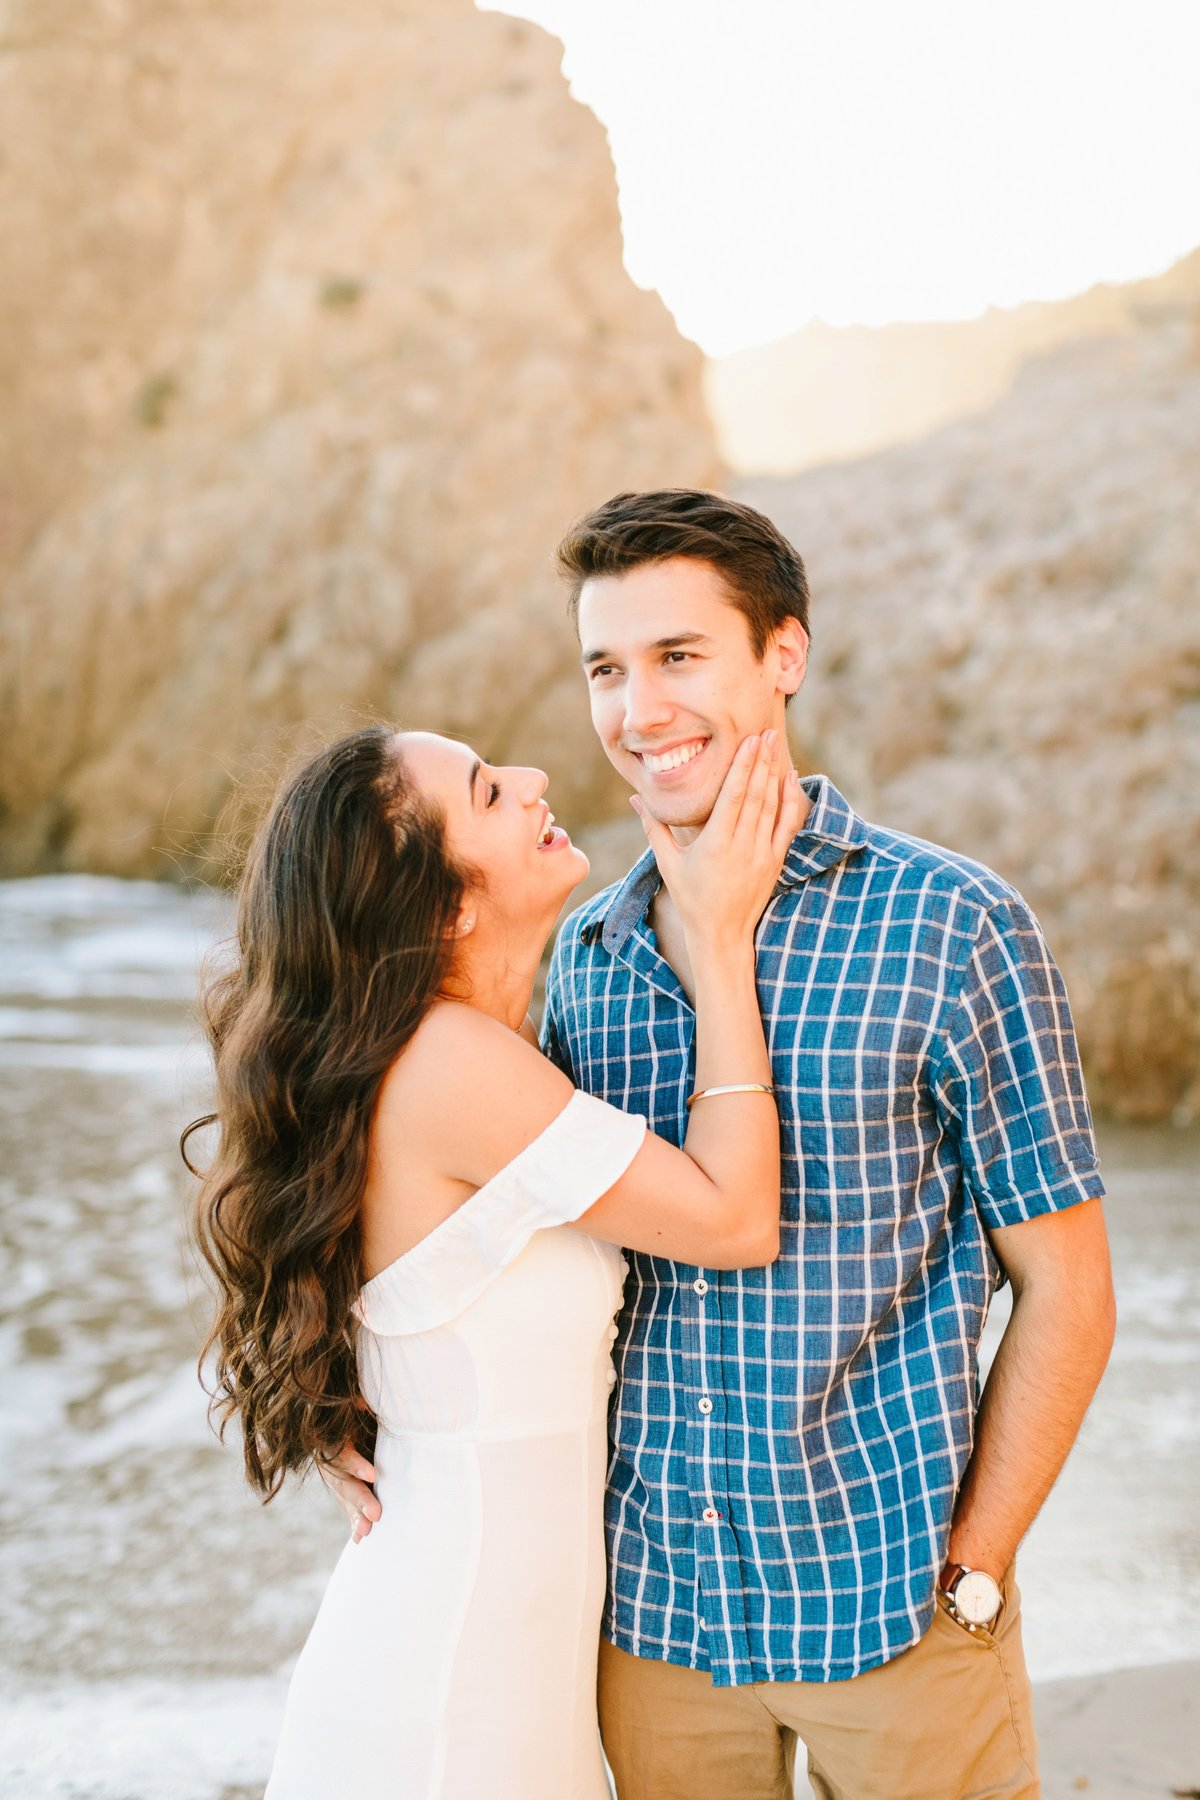 Best California Engagement Photographer-Jodee Debes Photography-119